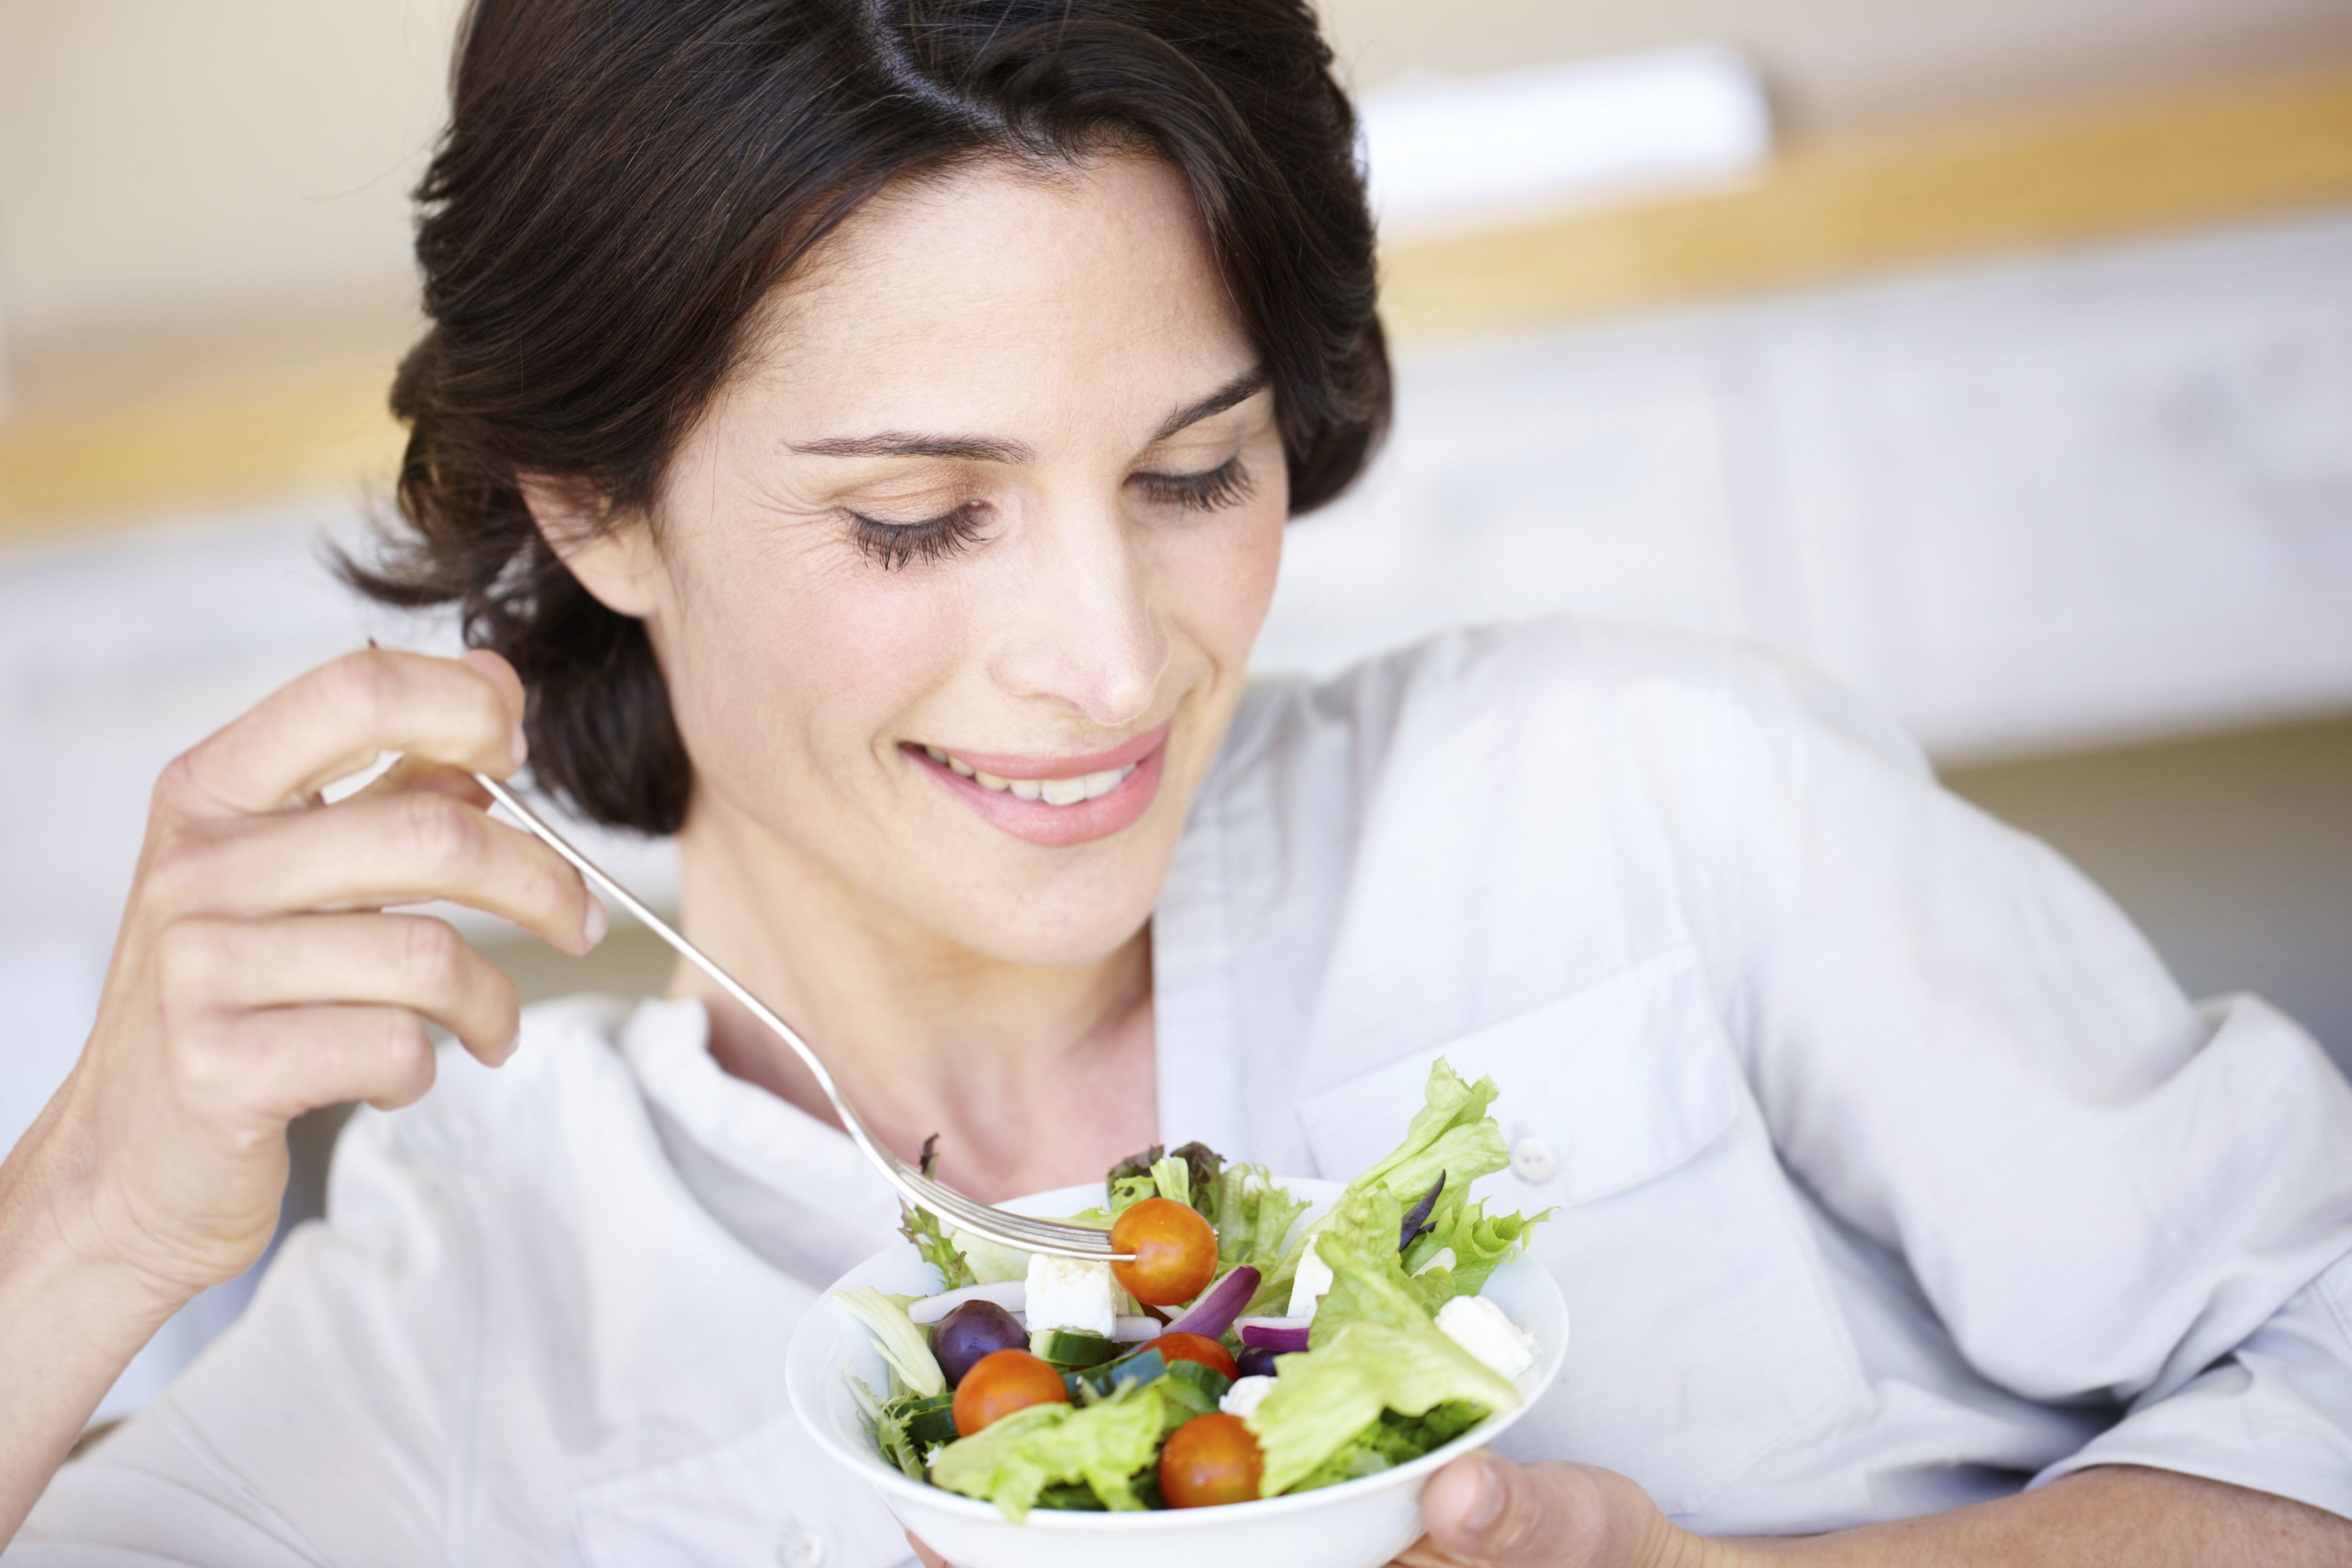 Best Foods To Eat When Dealing With Ibs